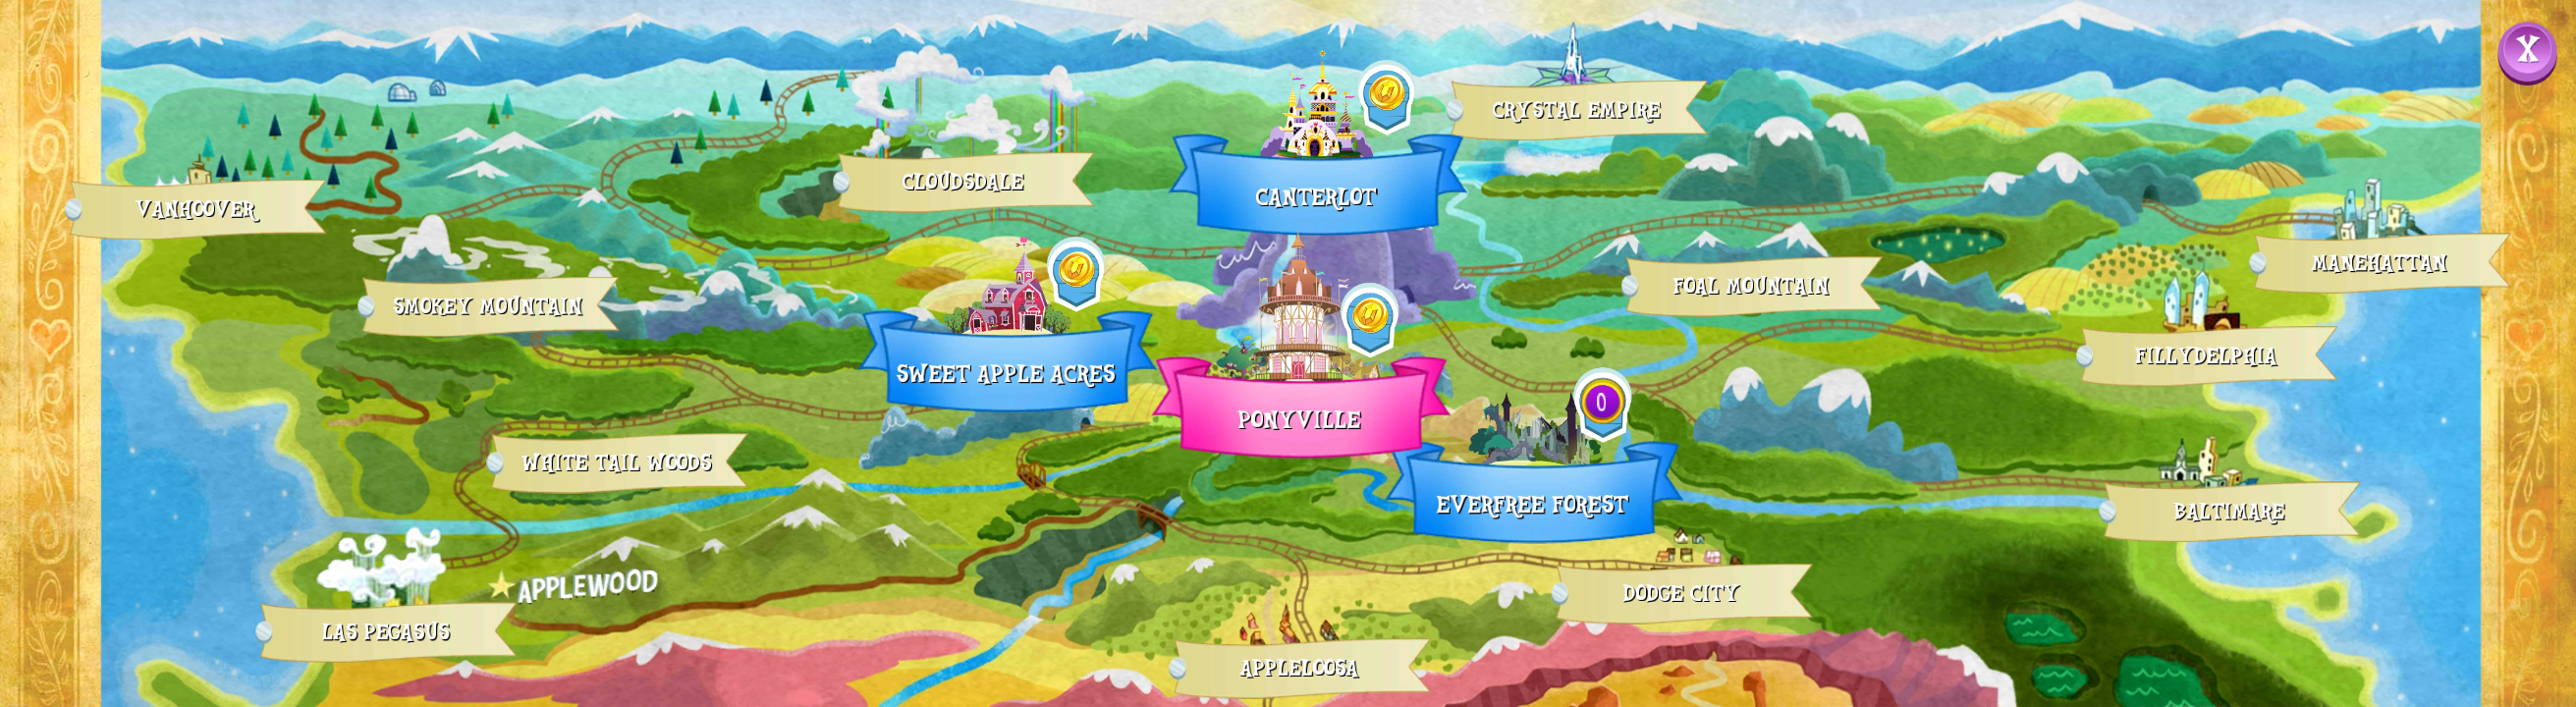 Image map of equestria mobile gameg my little pony map of equestria mobile gameg gumiabroncs Choice Image